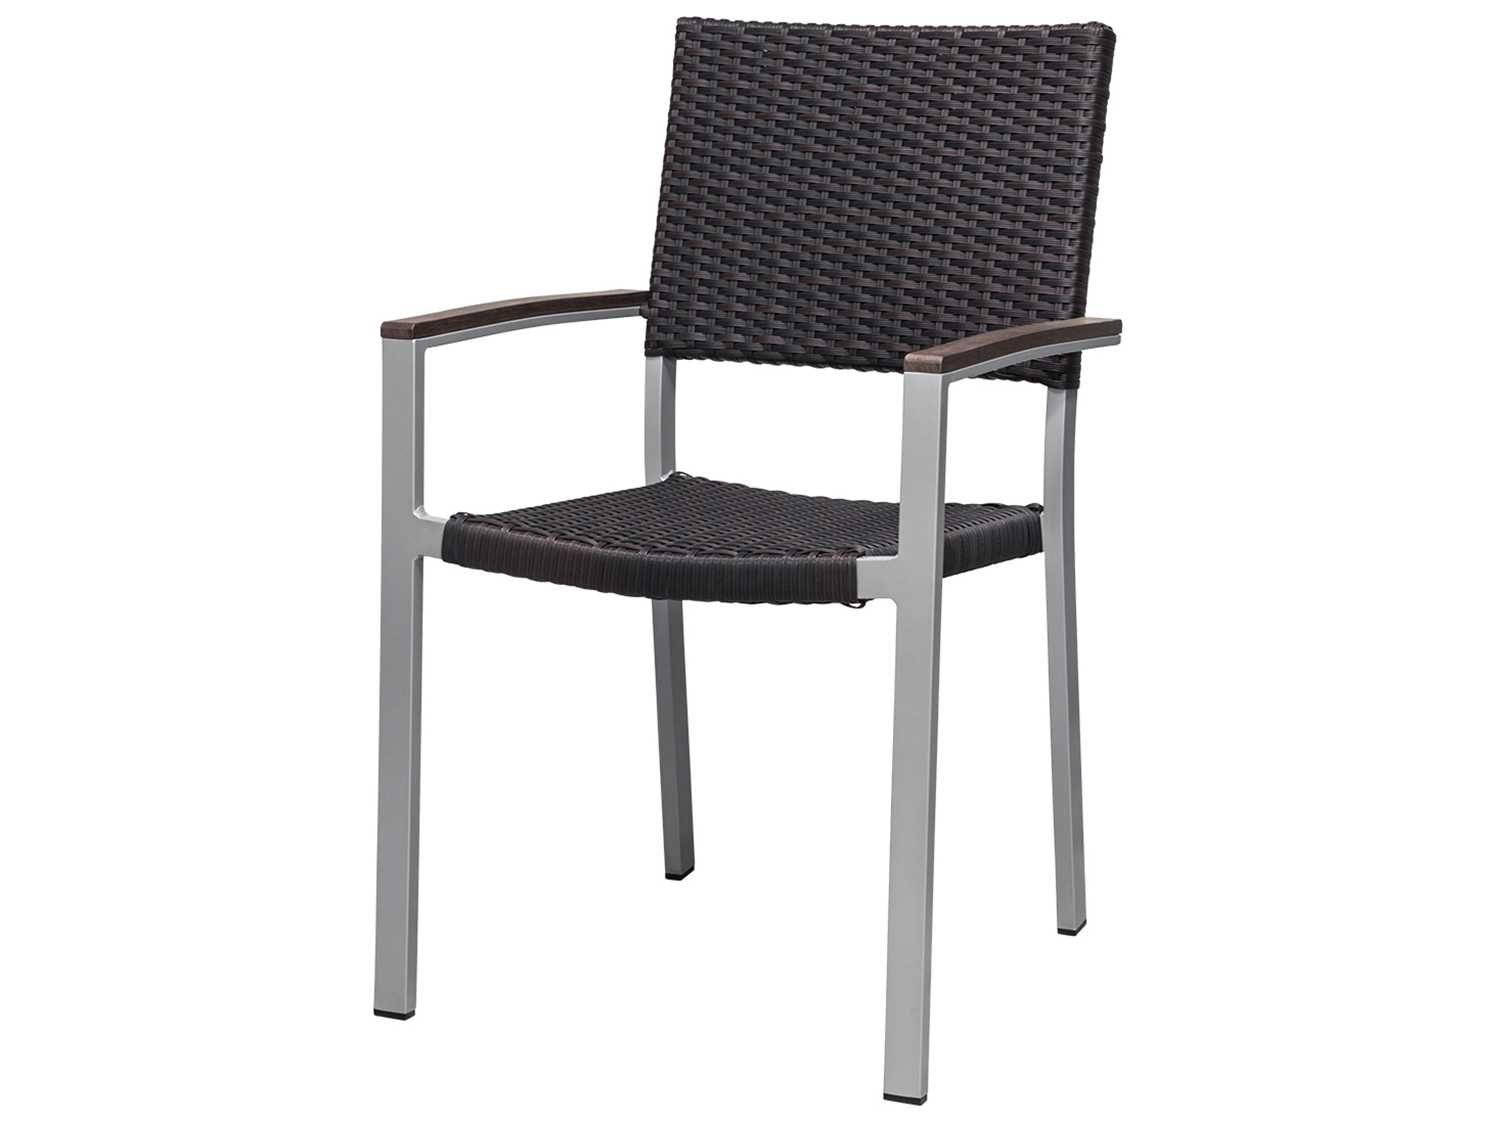 Source Outdoor Furniture Fiji Wicker Dining Set